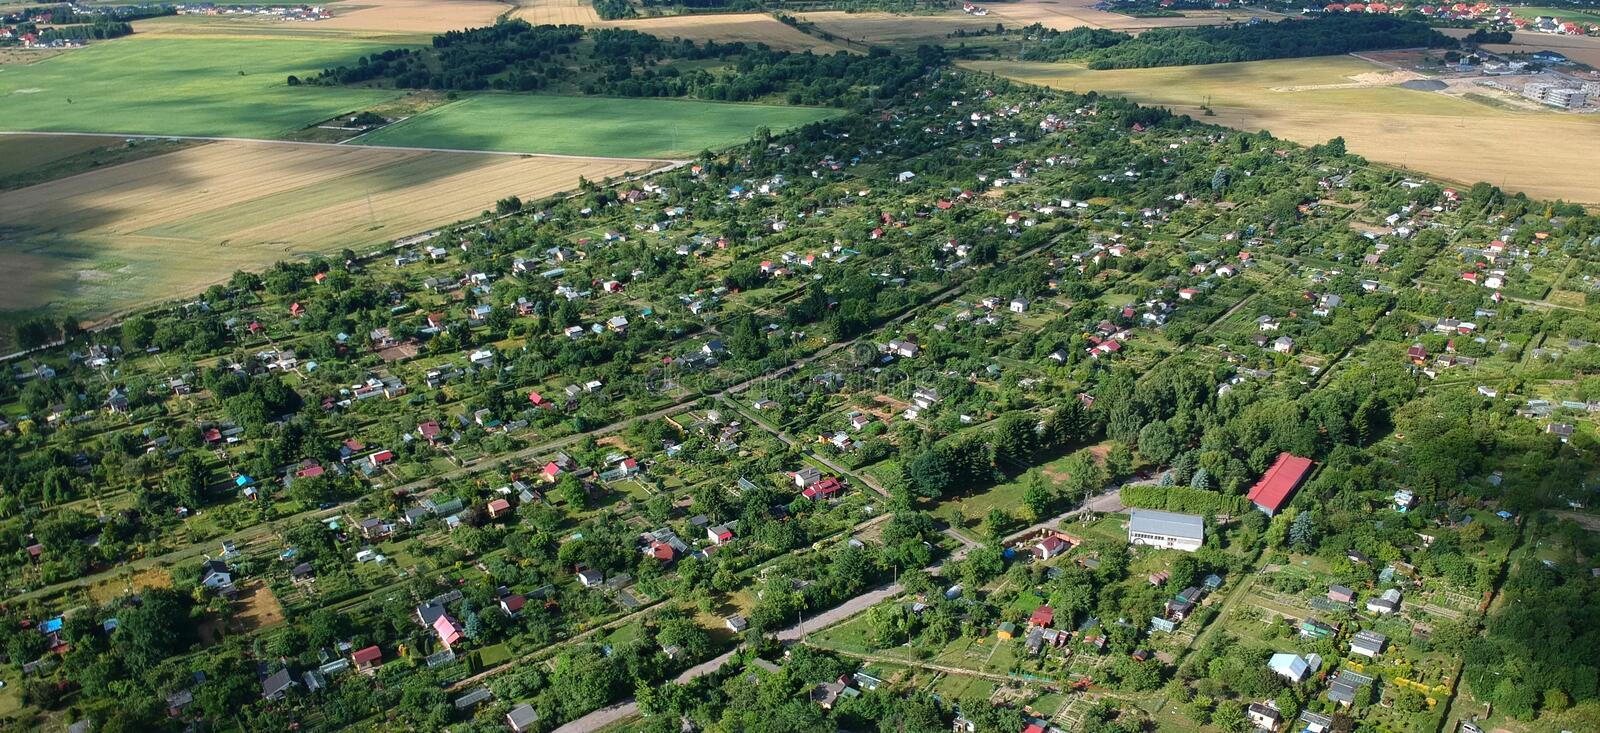 Multiple allotment gardens with little arbors, greenhouses, trees and bushes, aerial view stock photography